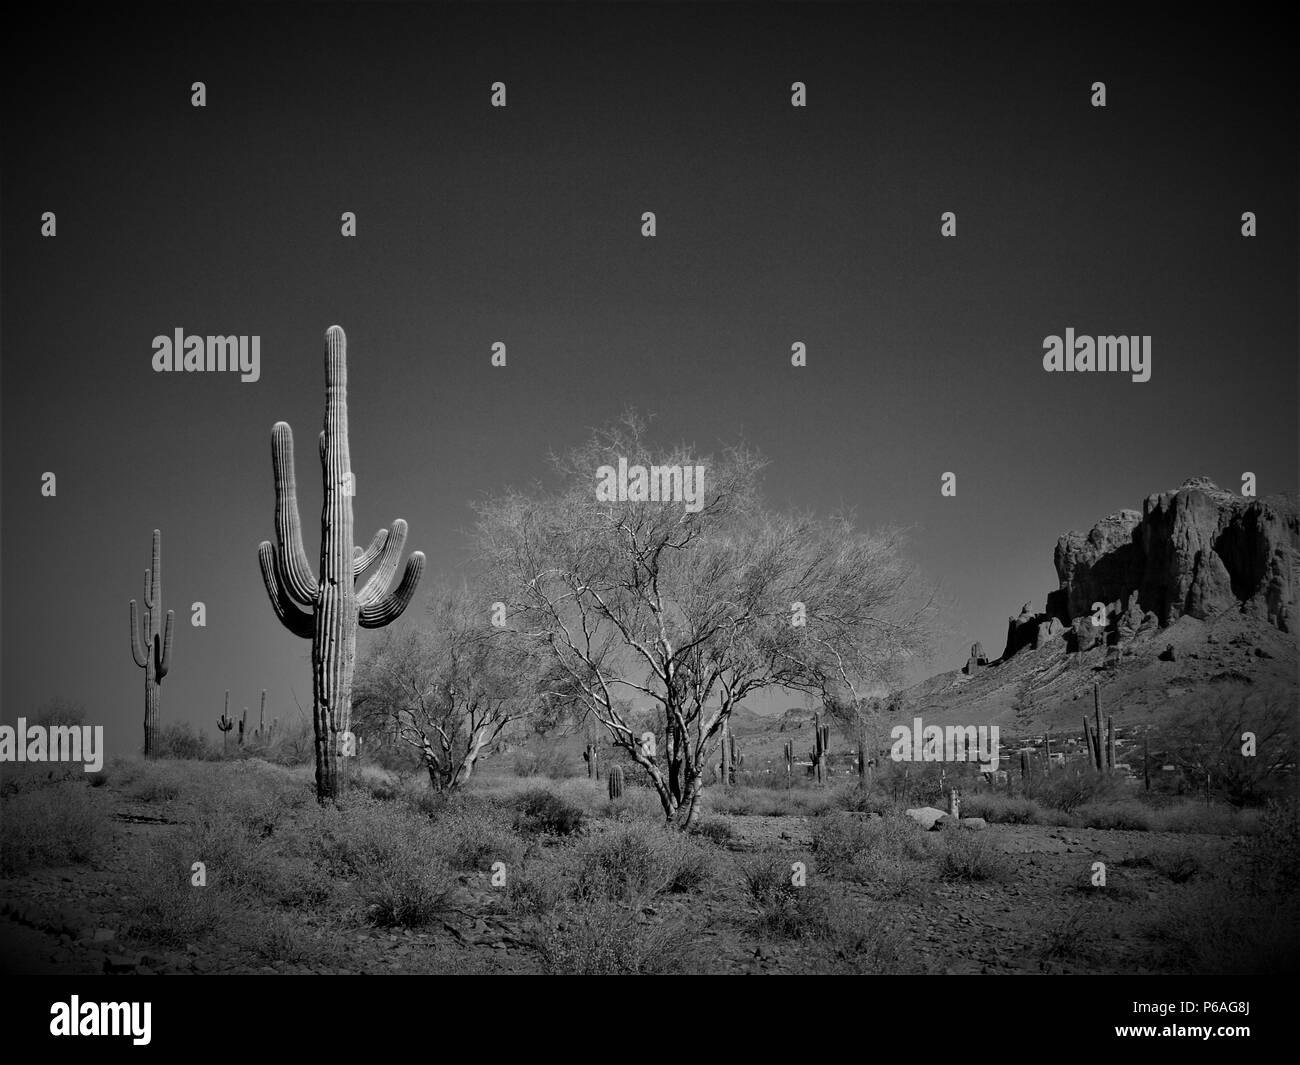 Superstition Mountain, Apache Junction, Arizona and Saguaro cactus in desert climate. - Stock Image